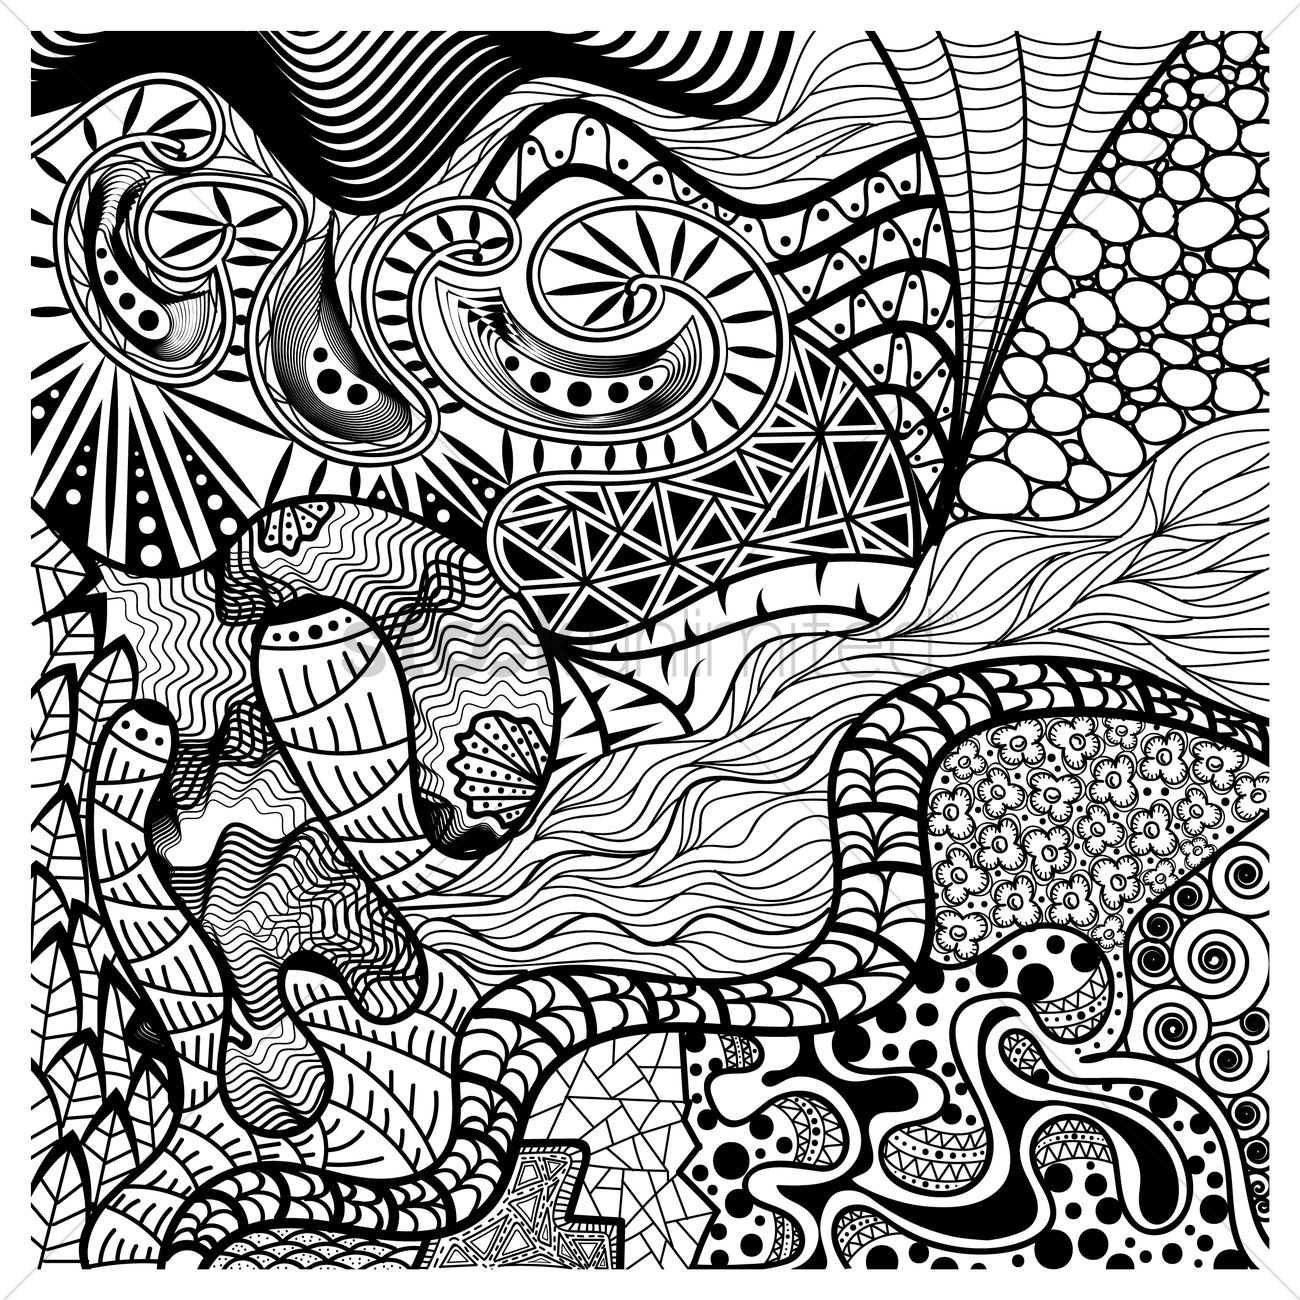 Line Art Design Abstract : Intricate abstract design vector image